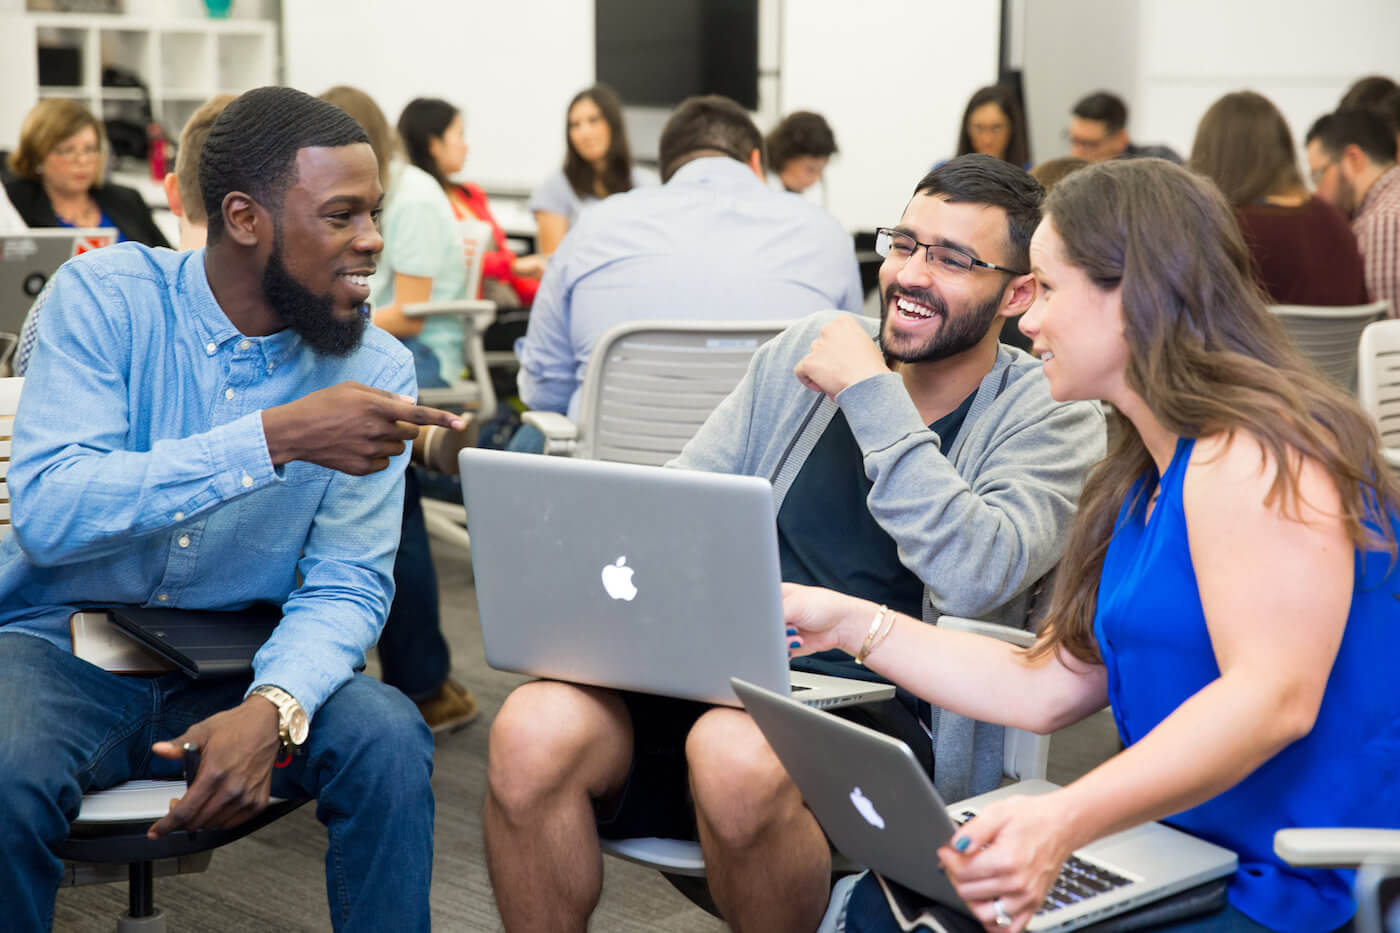 Create a Culture of Innovation - Build Custom Hackathons and design sprints tailored exclusively to solve problems, while engaging your team members.